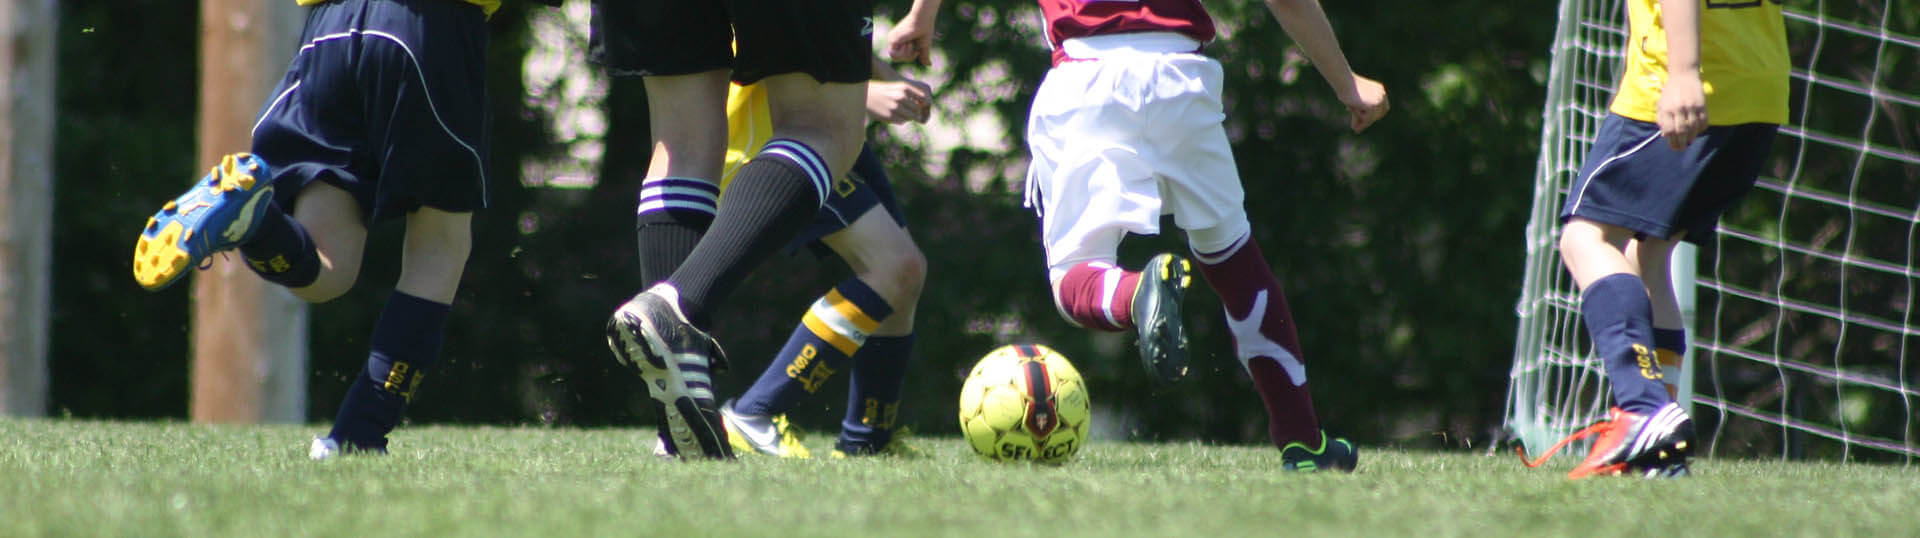 Waist-down photo of players racing for the ball.